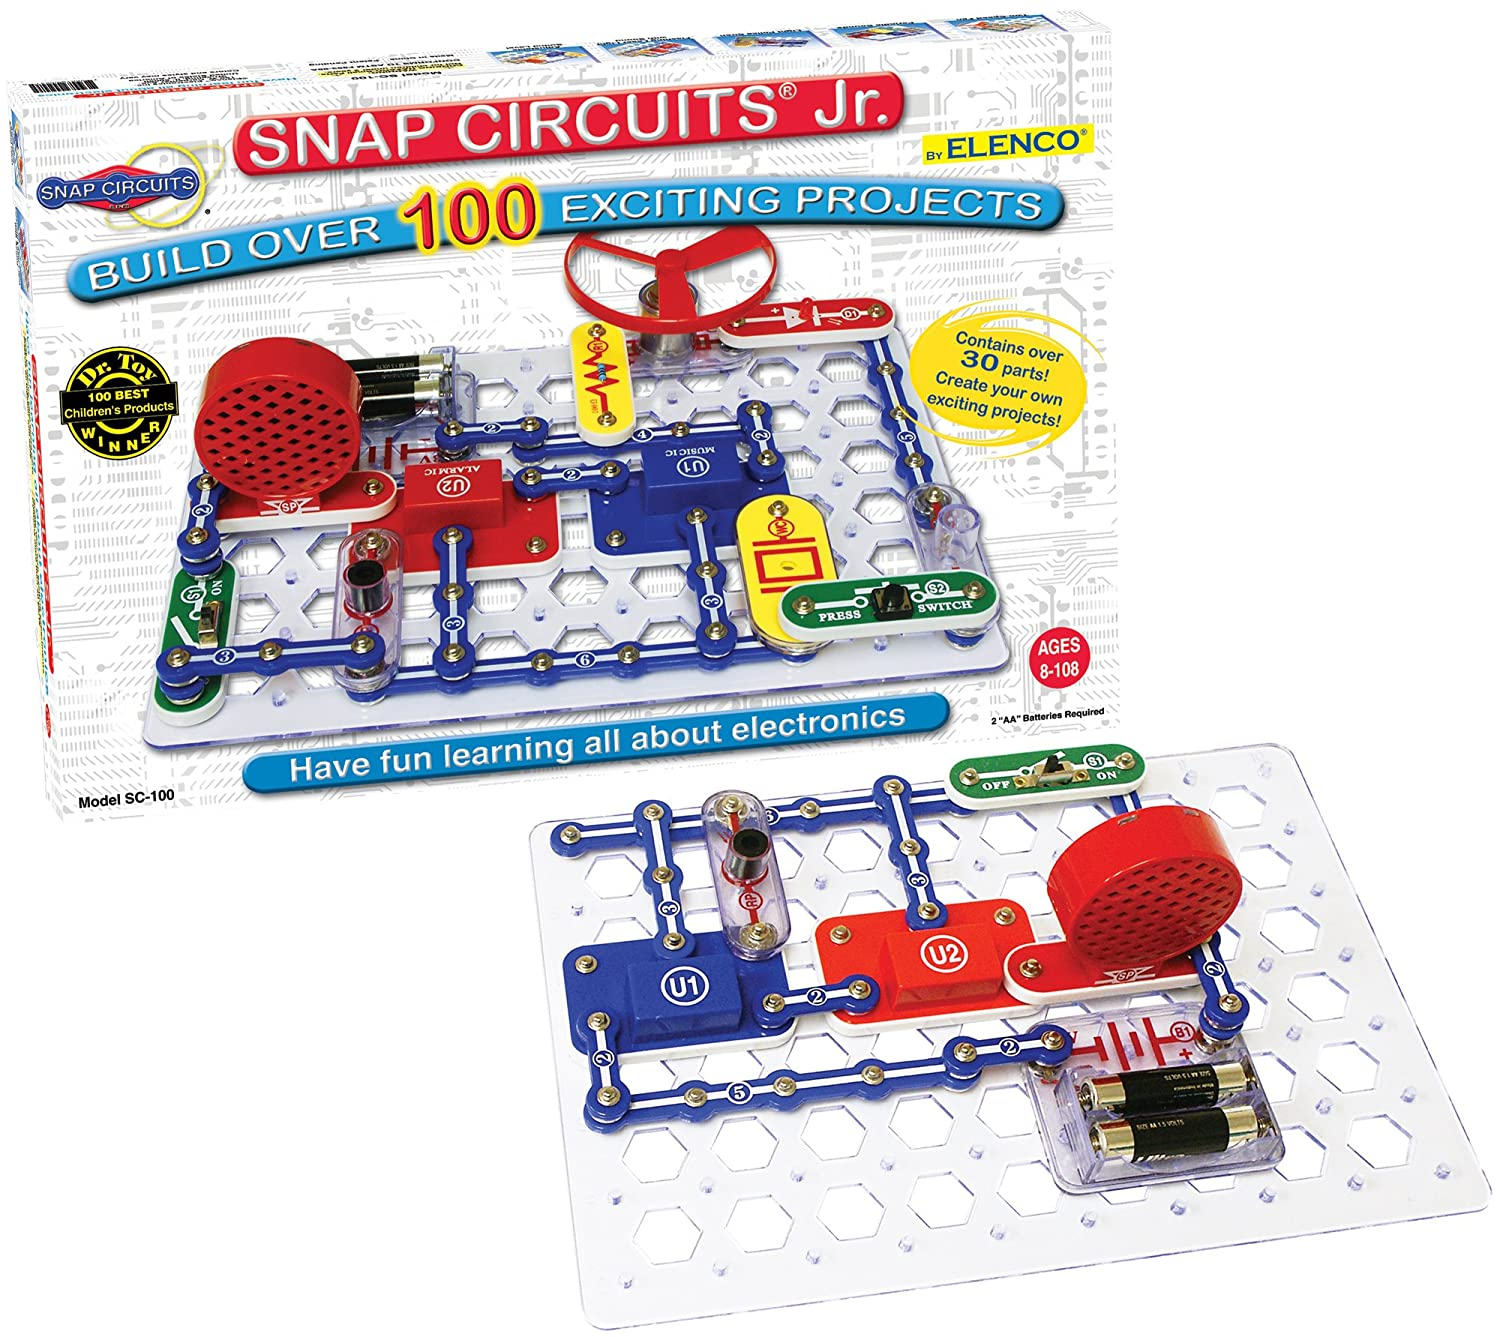 Amazon.com: Snap Circuits Jr. SC-100 Electronics Discovery Kit ...